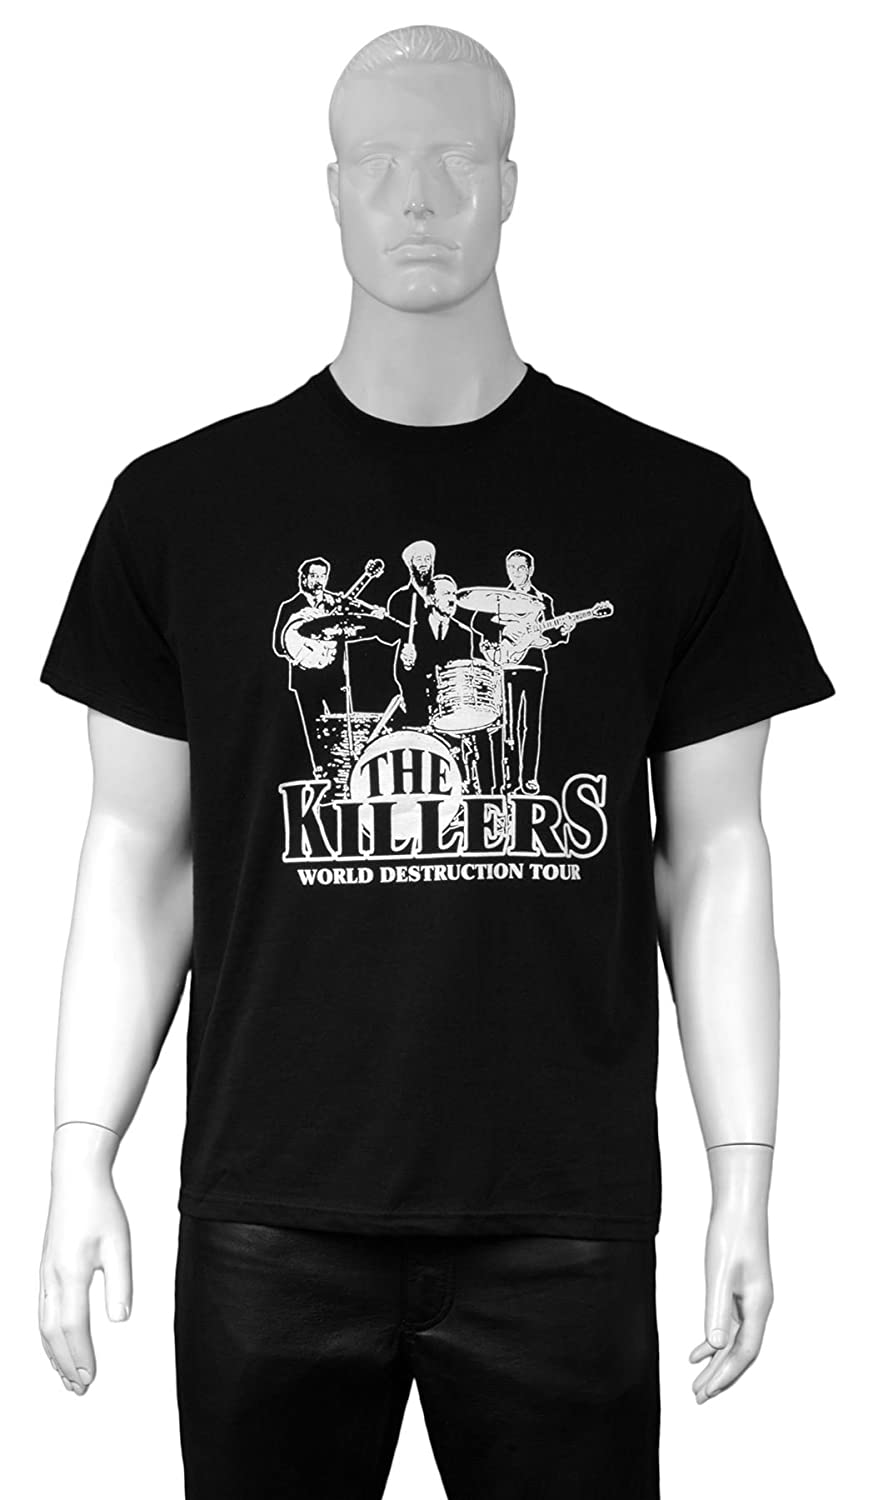 17df79f9e666 The Killers on Tour - Funny Sayings & Slogans Joke Mens T-shirt (Black)  (Large): Amazon.co.uk: Clothing